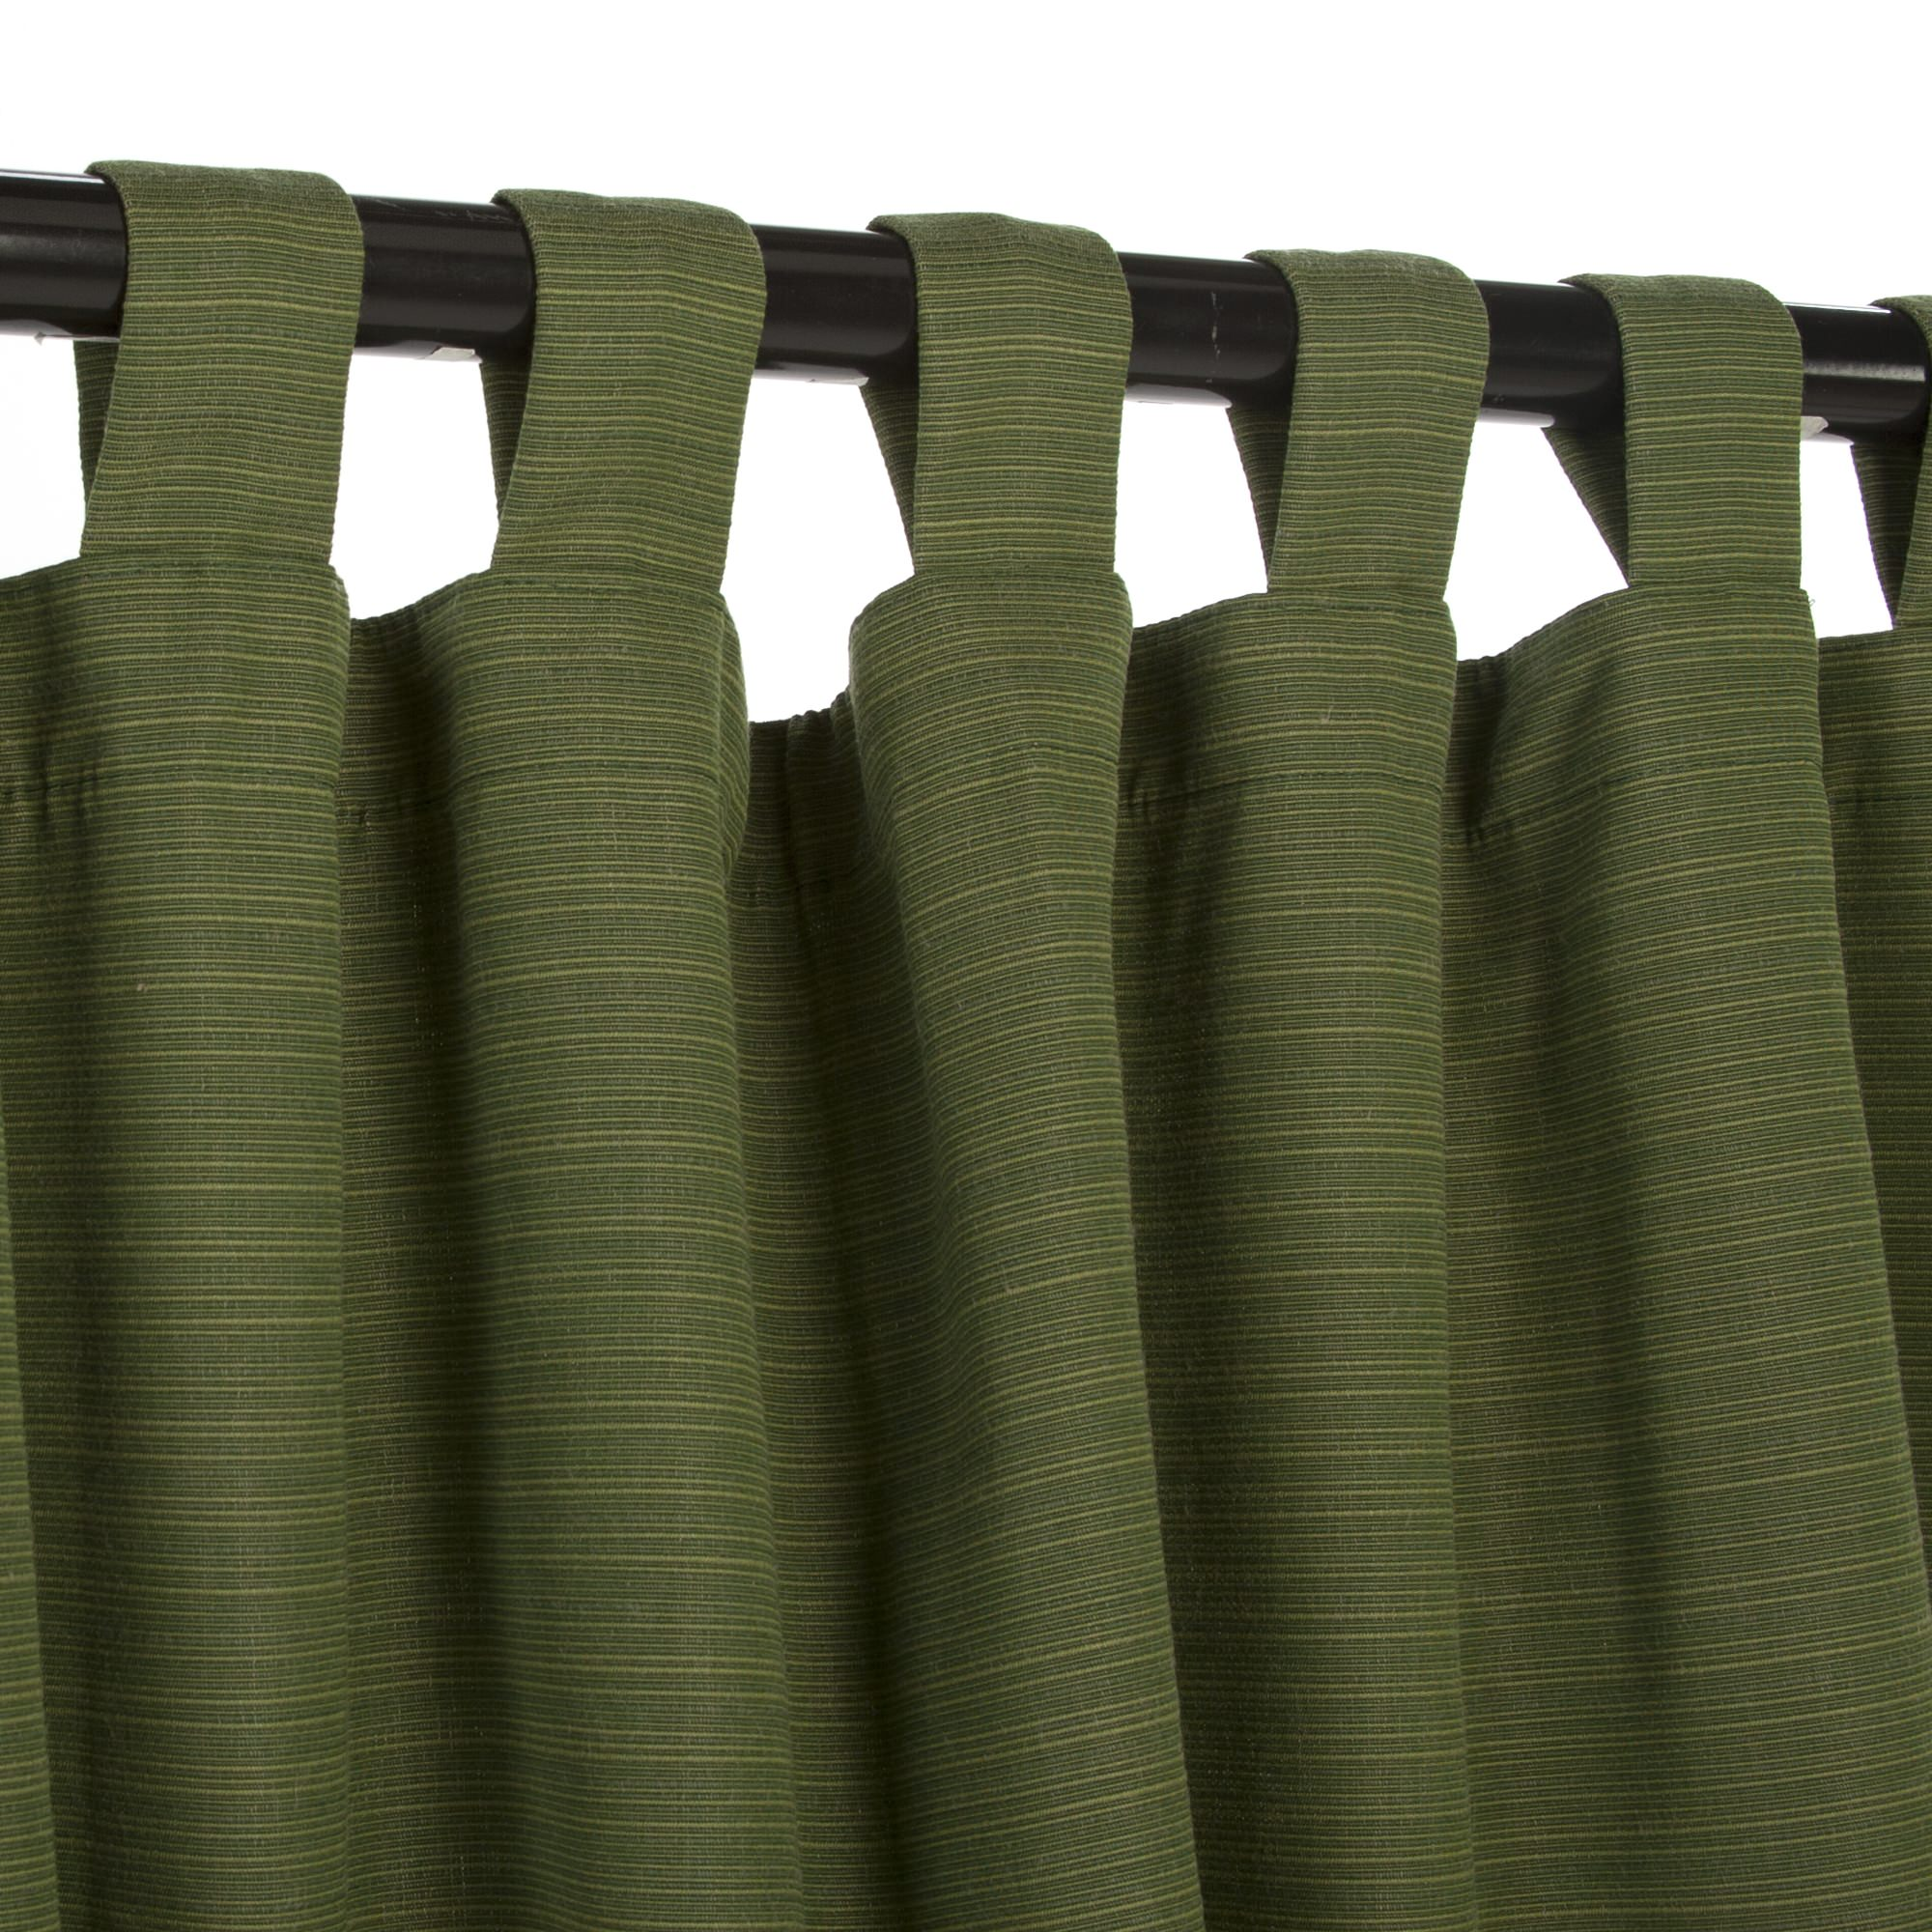 Dupione Palm Sunbrella Outdoor Curtain With Tabs